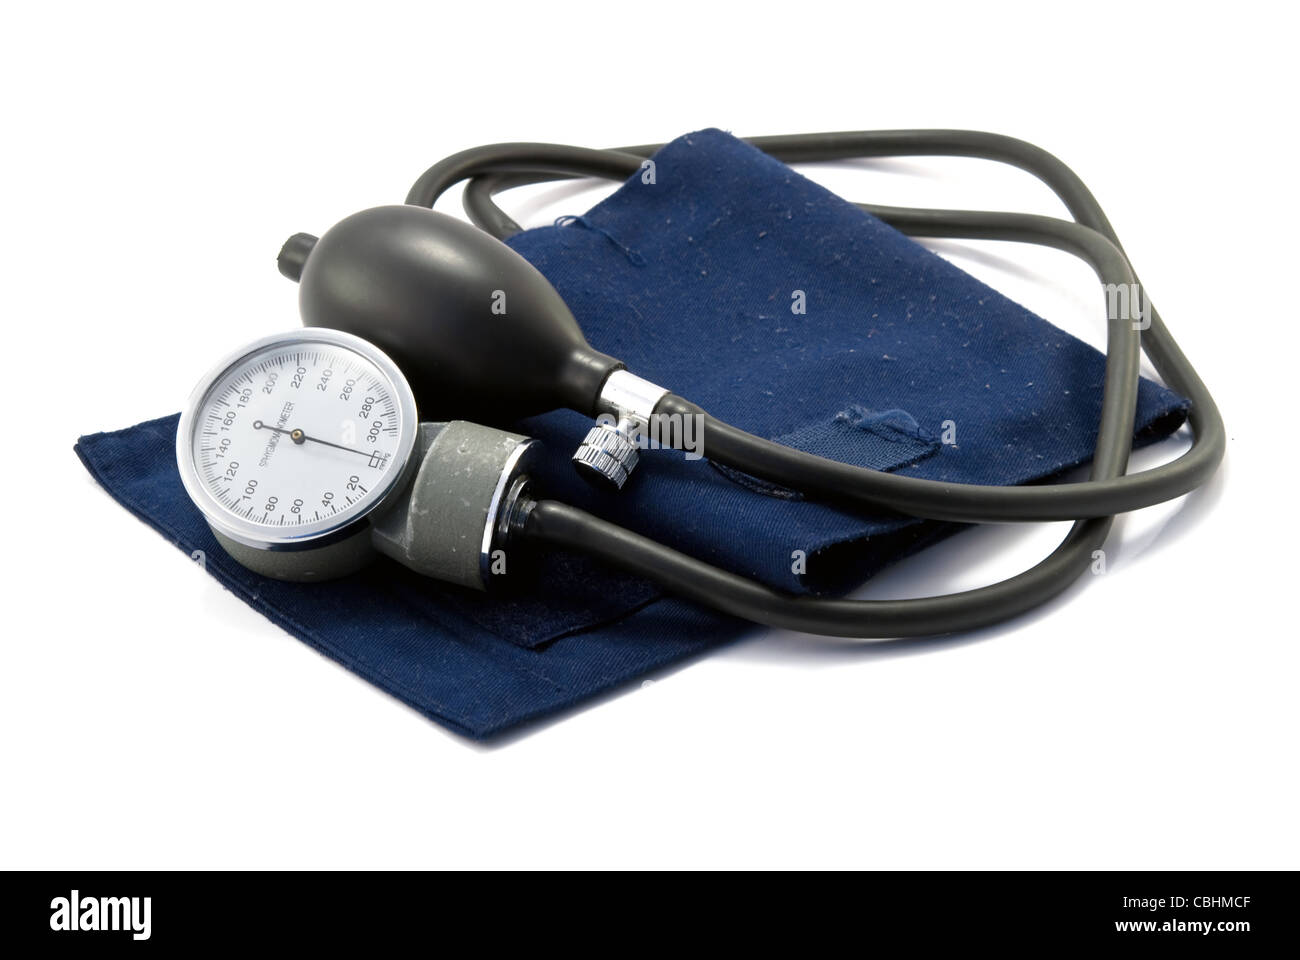 sphygmomanometer, the instrument used to measure blood pressure, - Stock Image